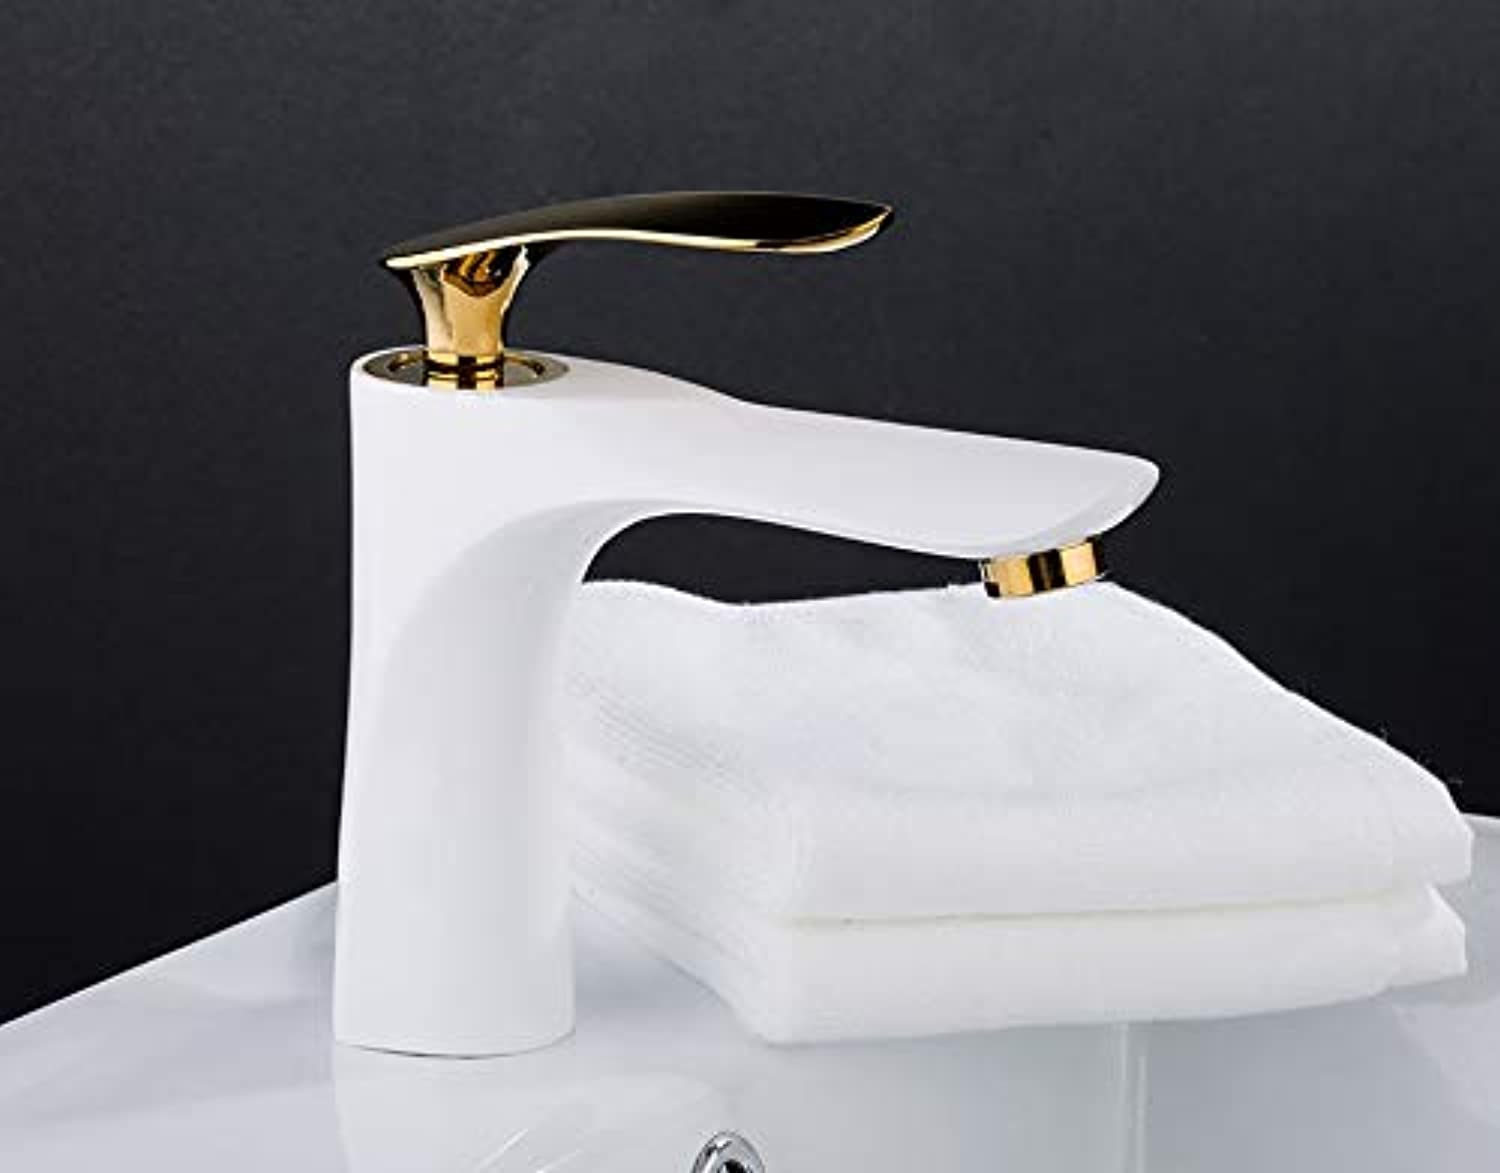 gold White Painting Faucet Basin Sink Tap Single Handle Basin Mixer Tap Hot and Cold Water Deck Mounted Basin Tap